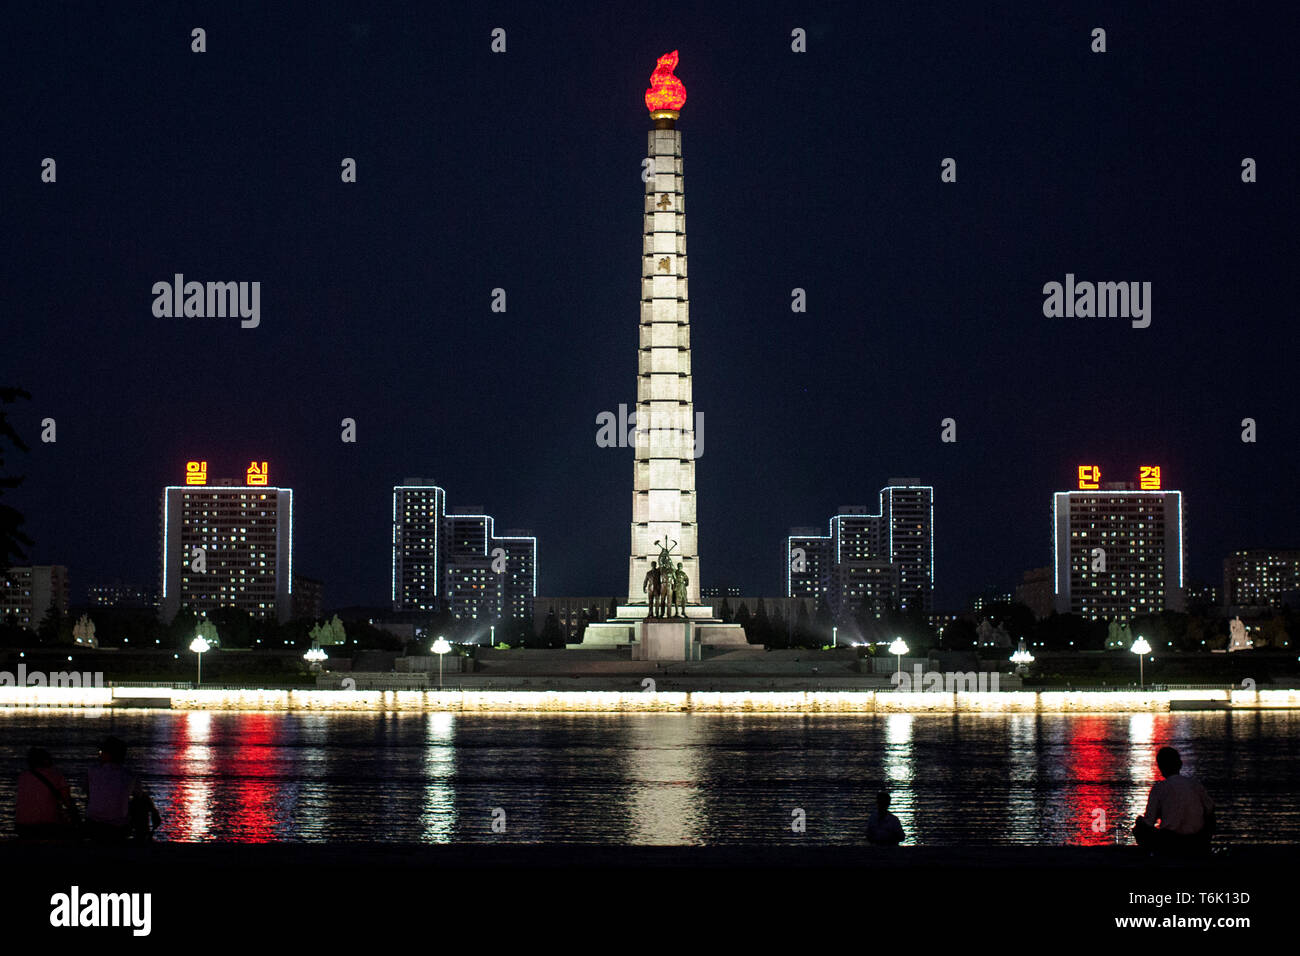 The Juche Idea Tower in Pyongyang. Juche is a North Korean political philosophy about self-reliance and controlling their own destiny. - Stock Image